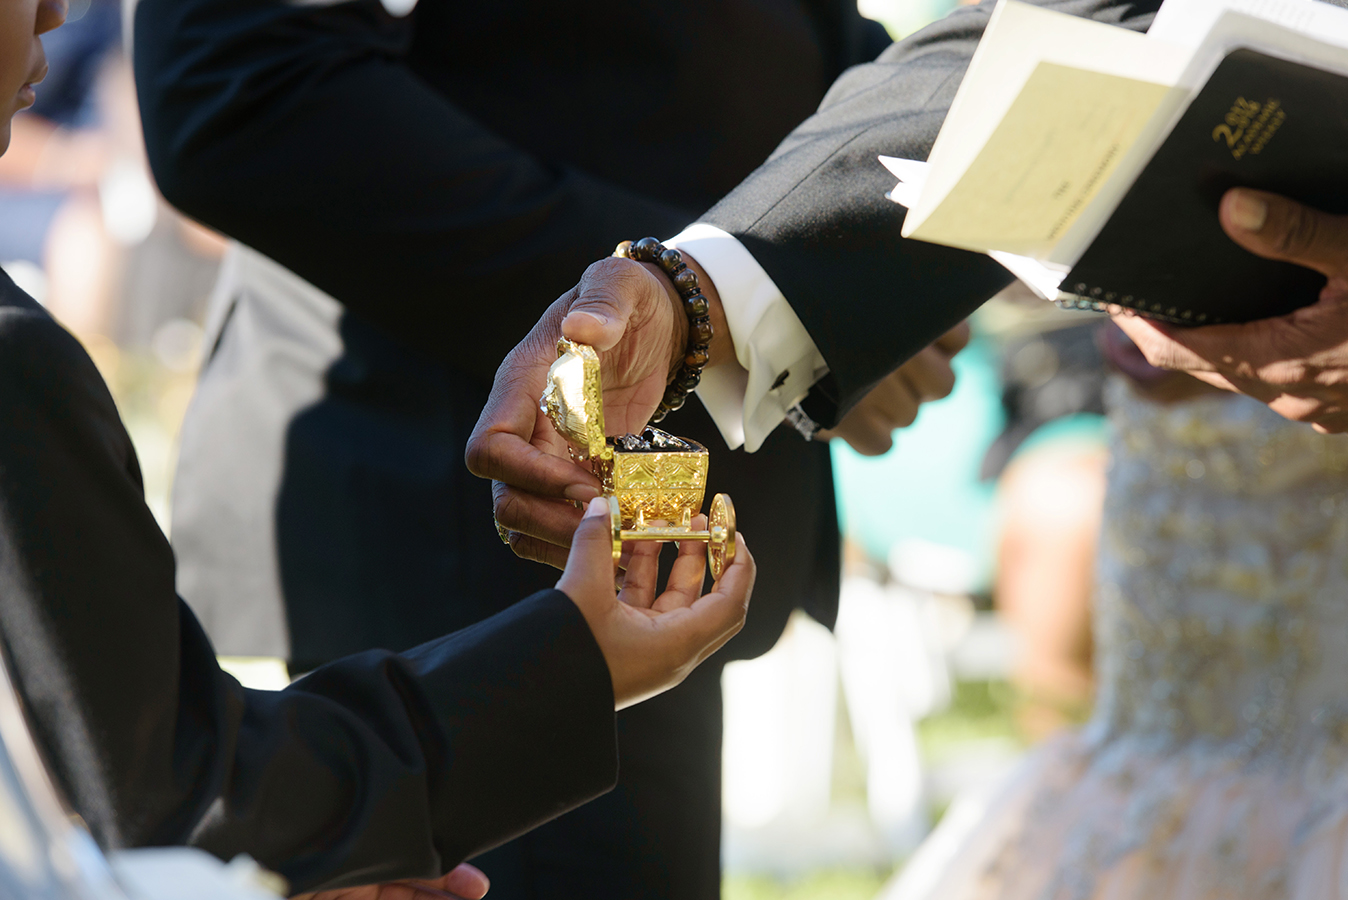 The wedding rings were held in a gold ring box in the shape of a fairy tale carriage.